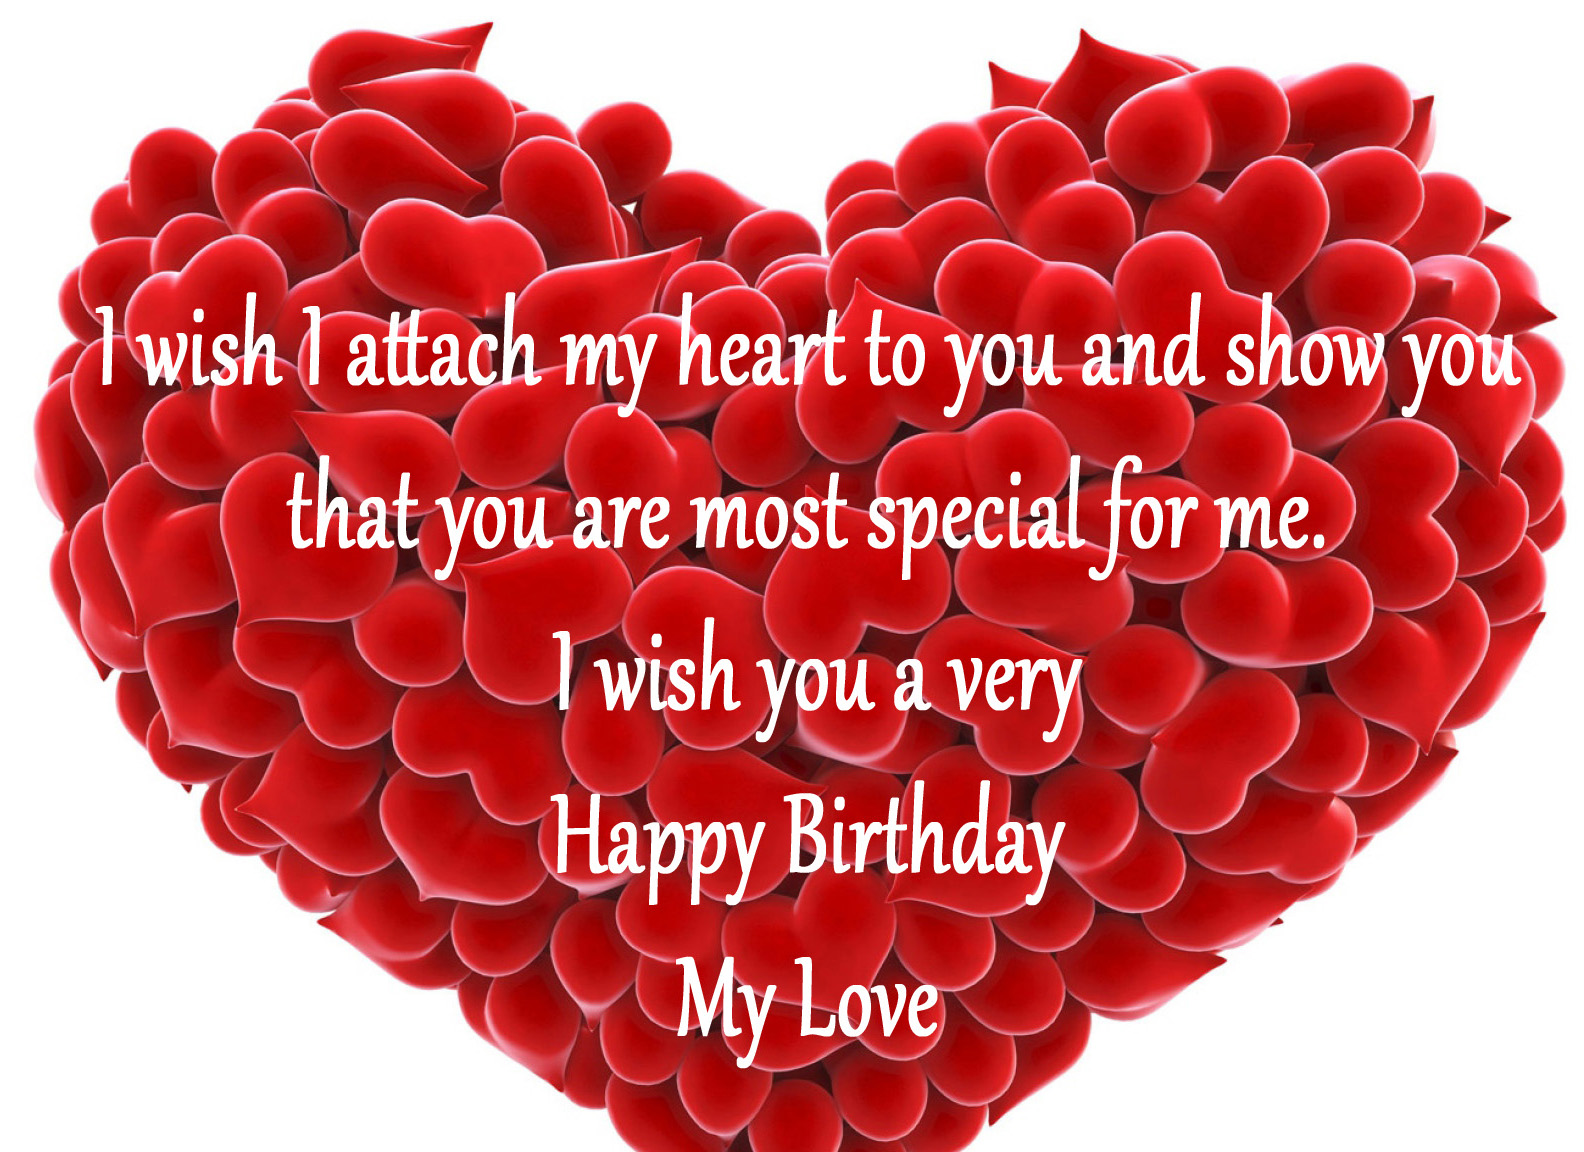 Birthday wishes images for lover - Wishes & Love